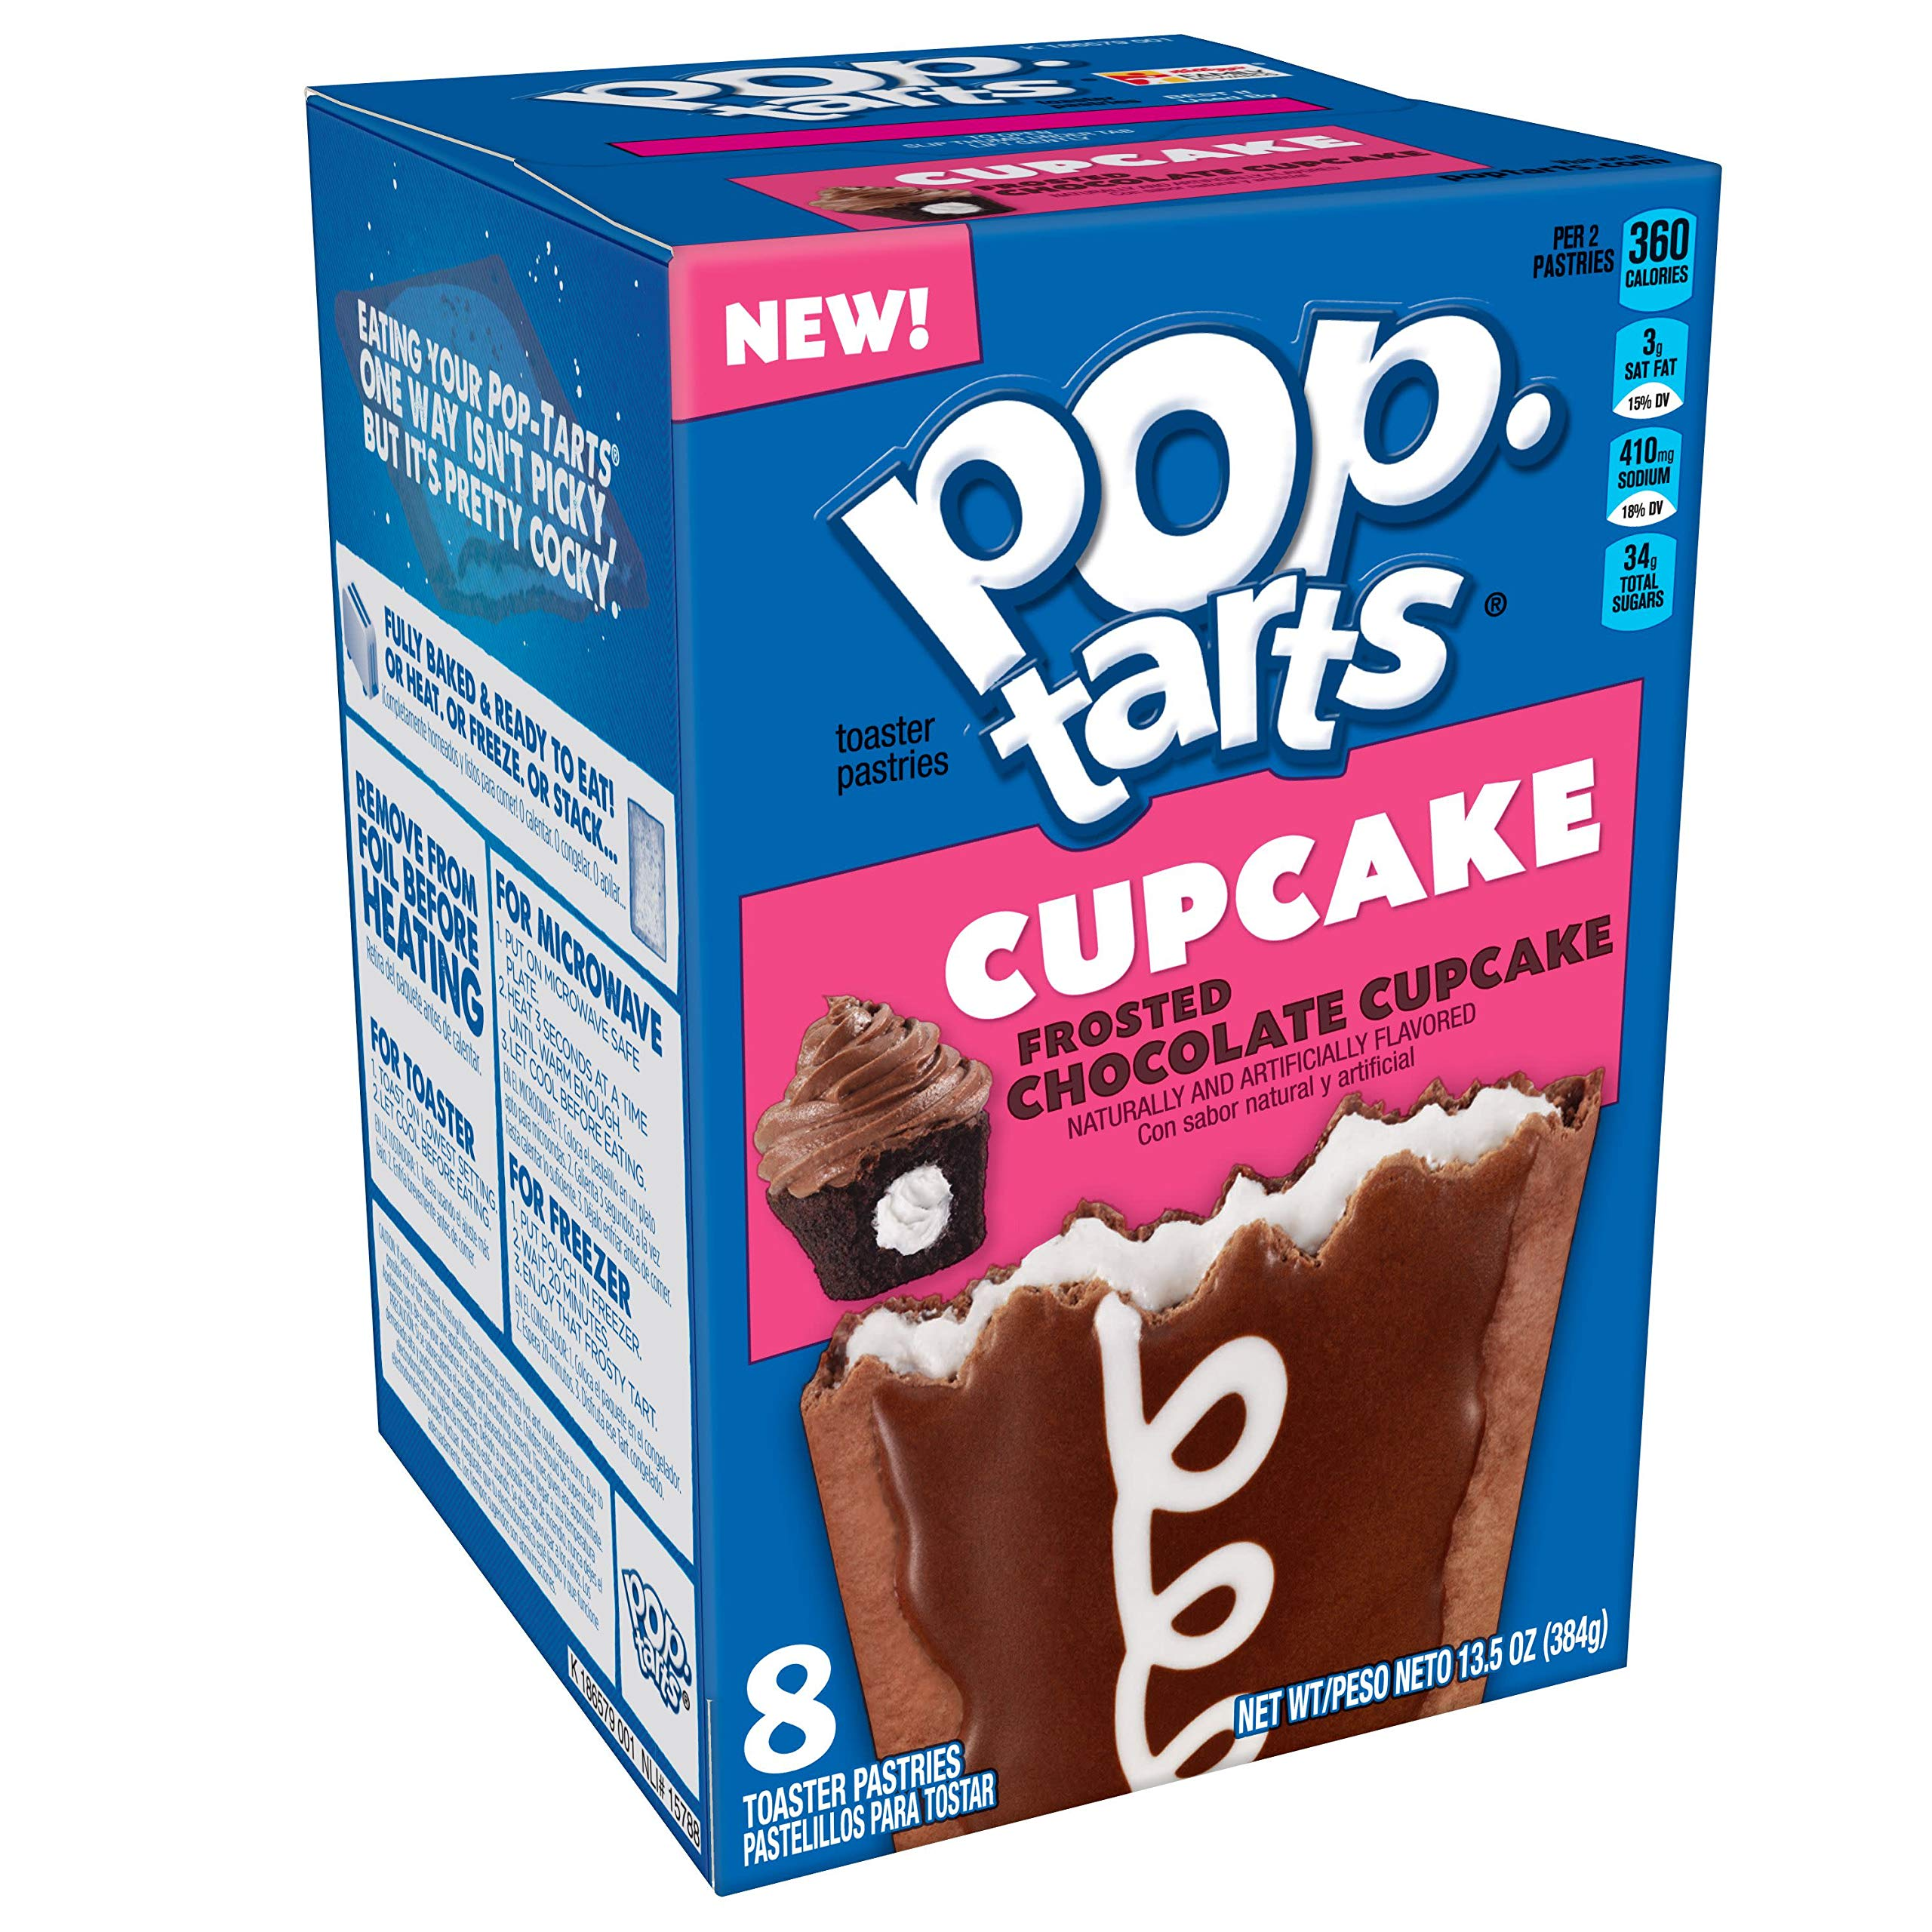 Pop-Tarts Cupcake, Breakfast Toaster Pastries, Frosted Chocolate Cupcake, 13.5oz Box (Pack of 12) by Pop-Tarts